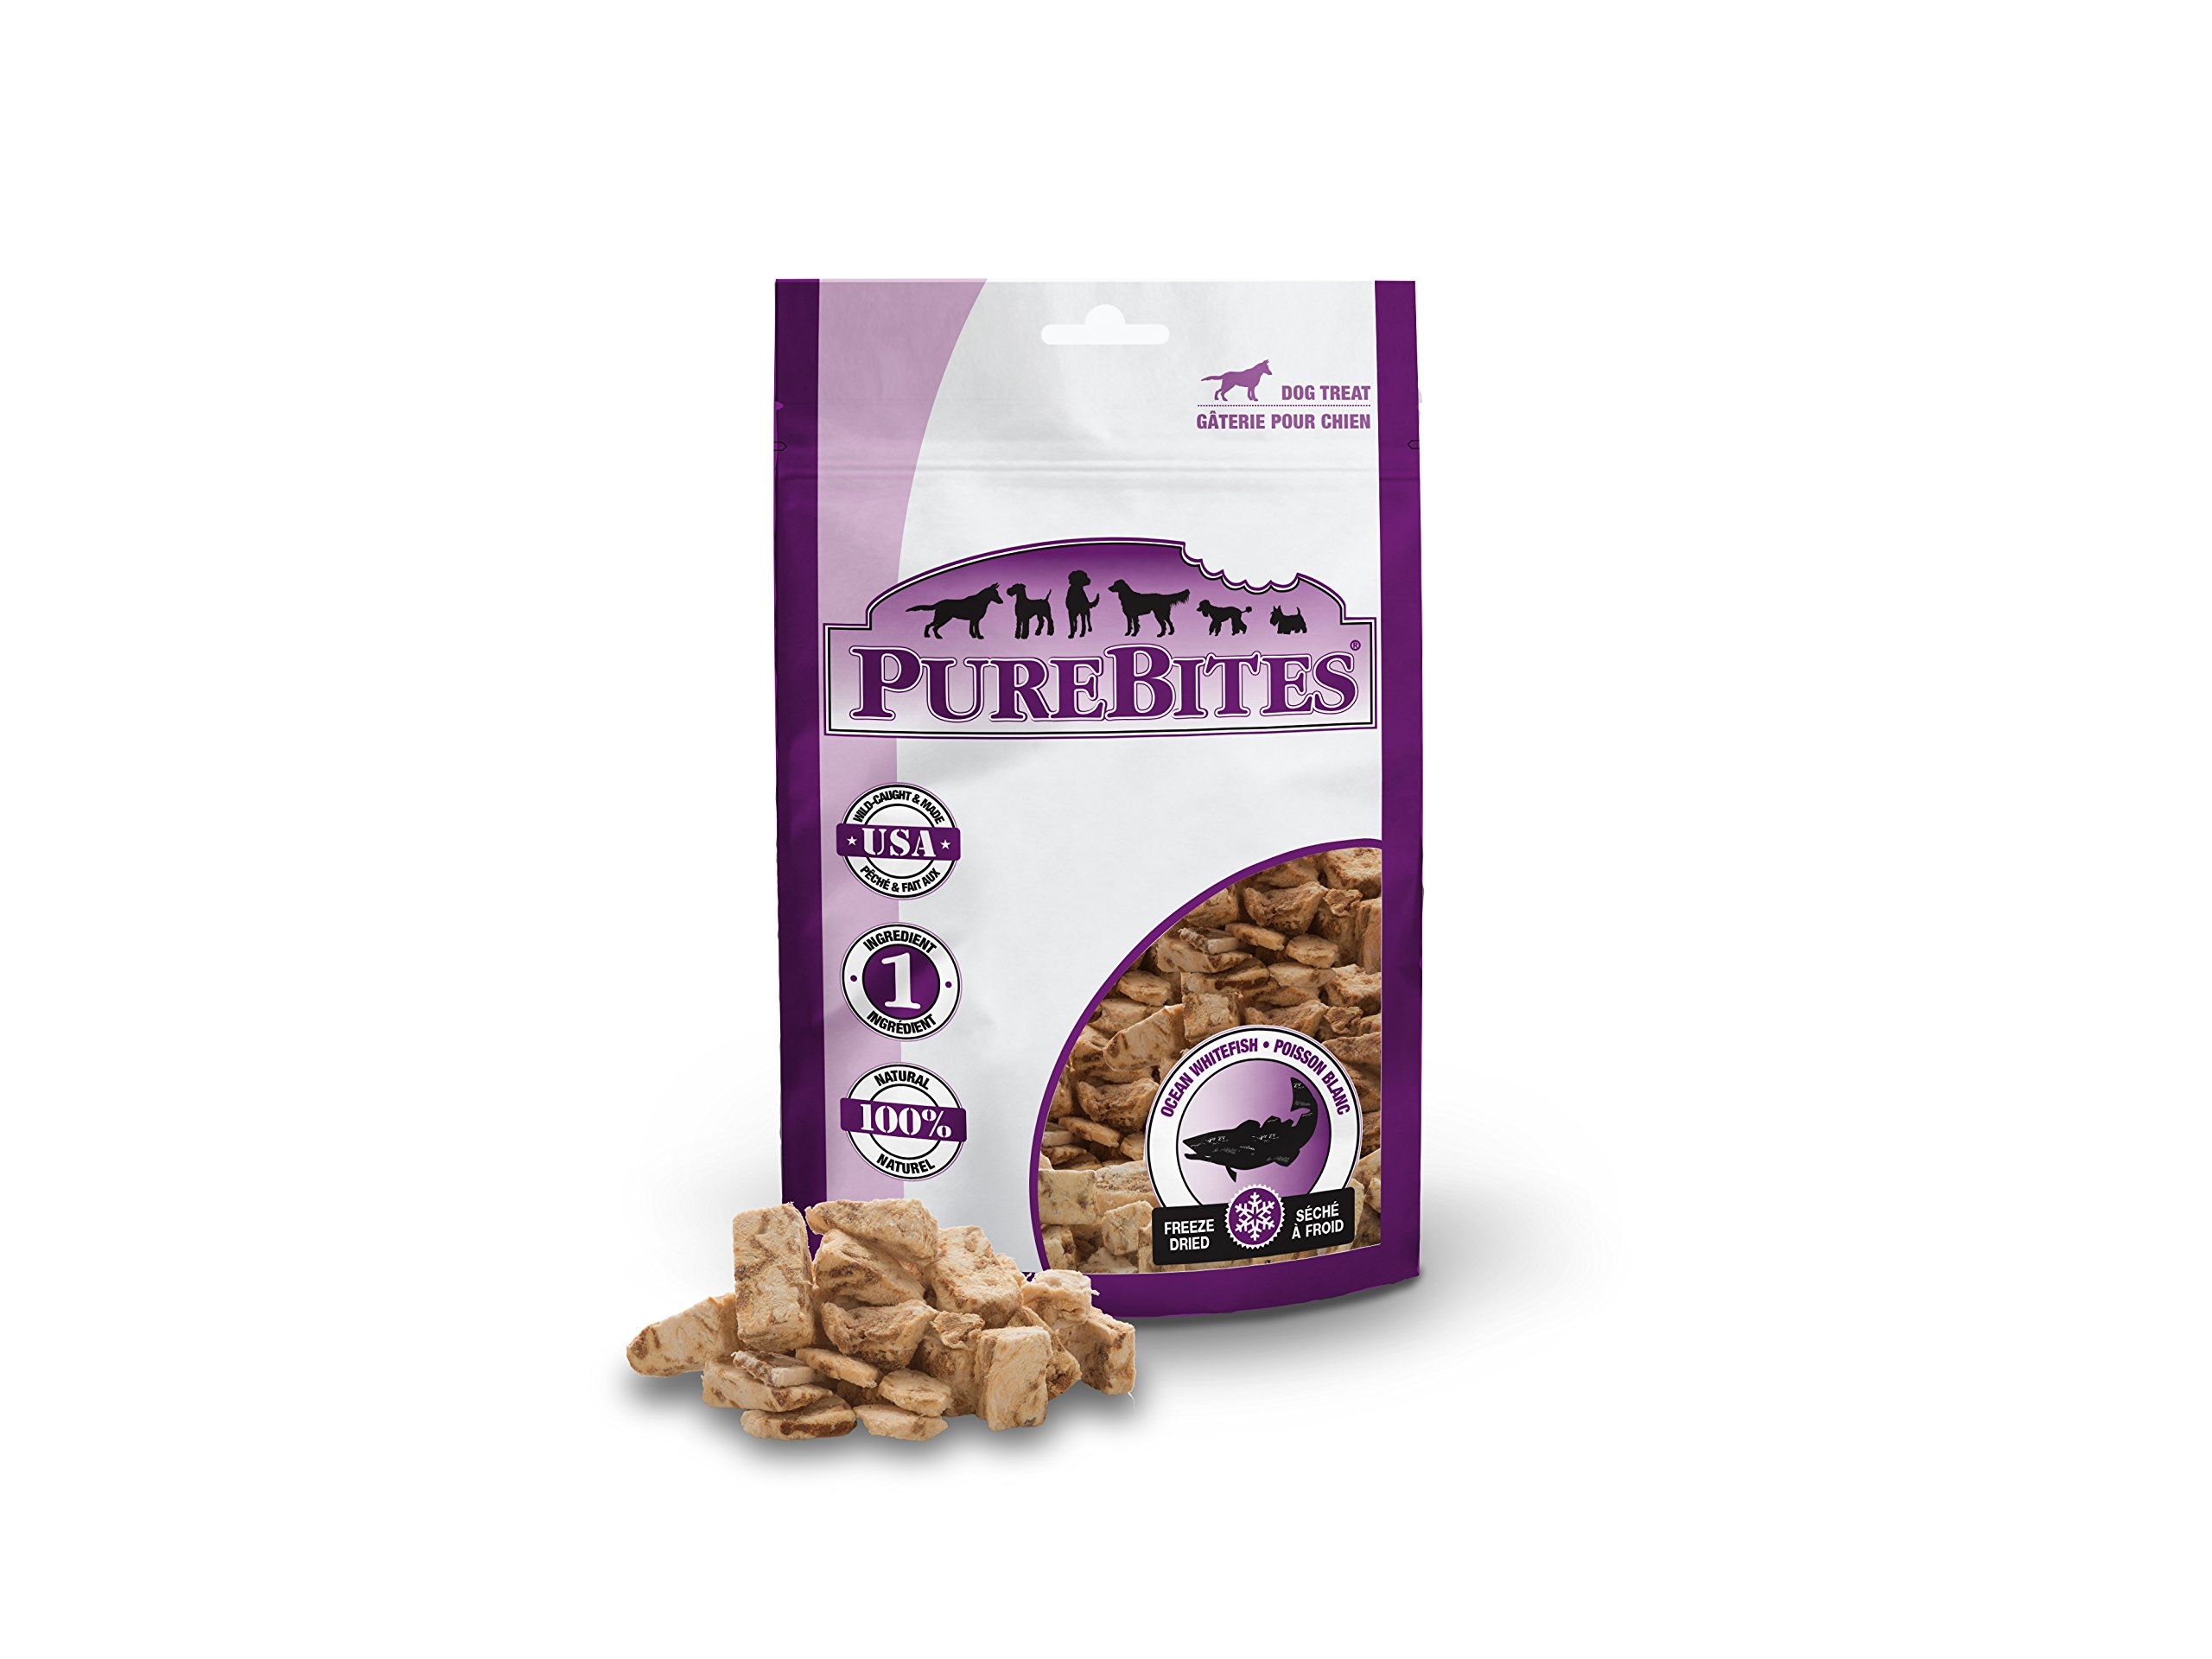 PureBites Ocean Whitefish for Dogs, 7.0oz / 198g - Super Value Size, 12 Pack